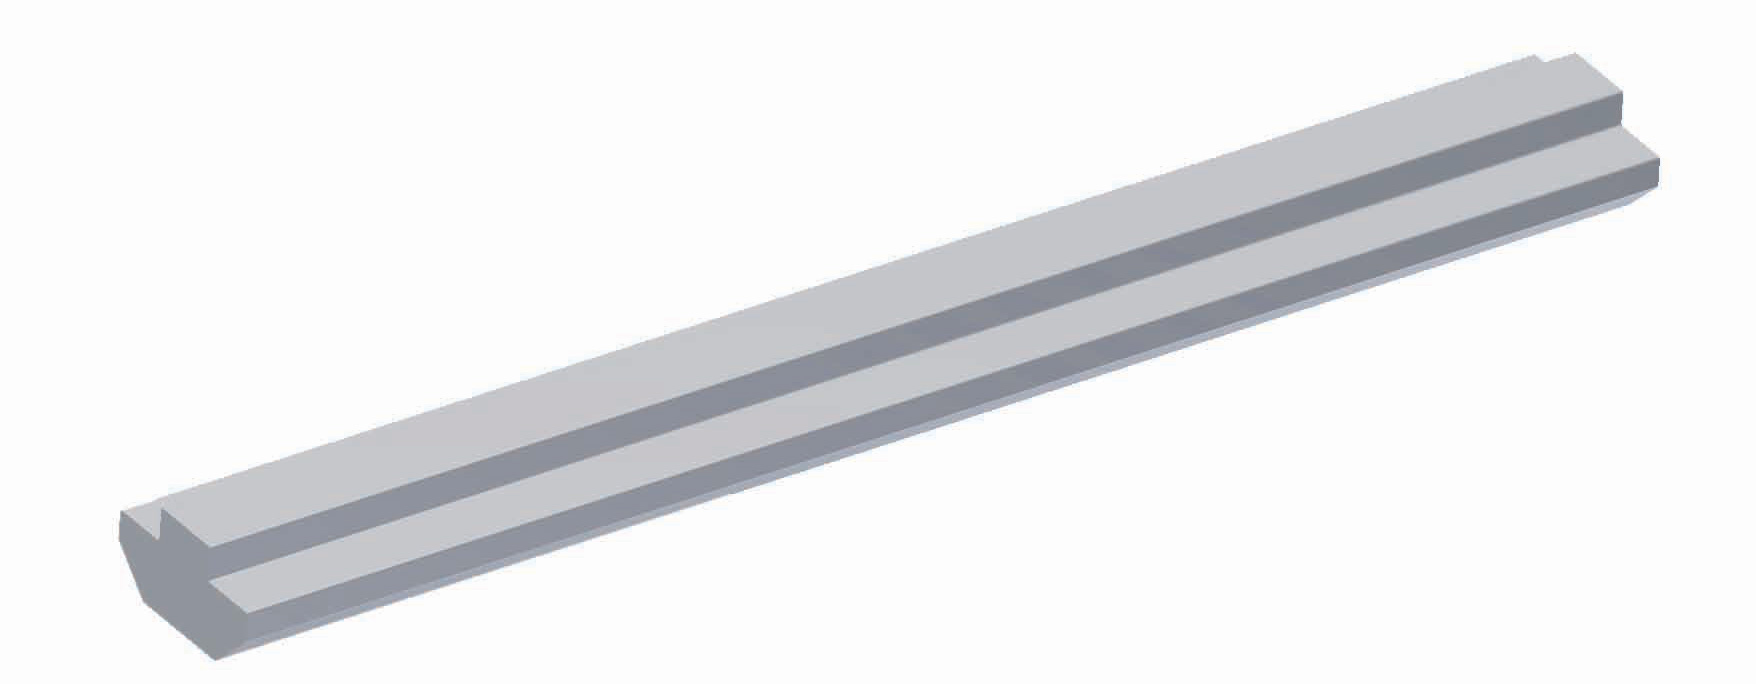 Joint Connector Bar